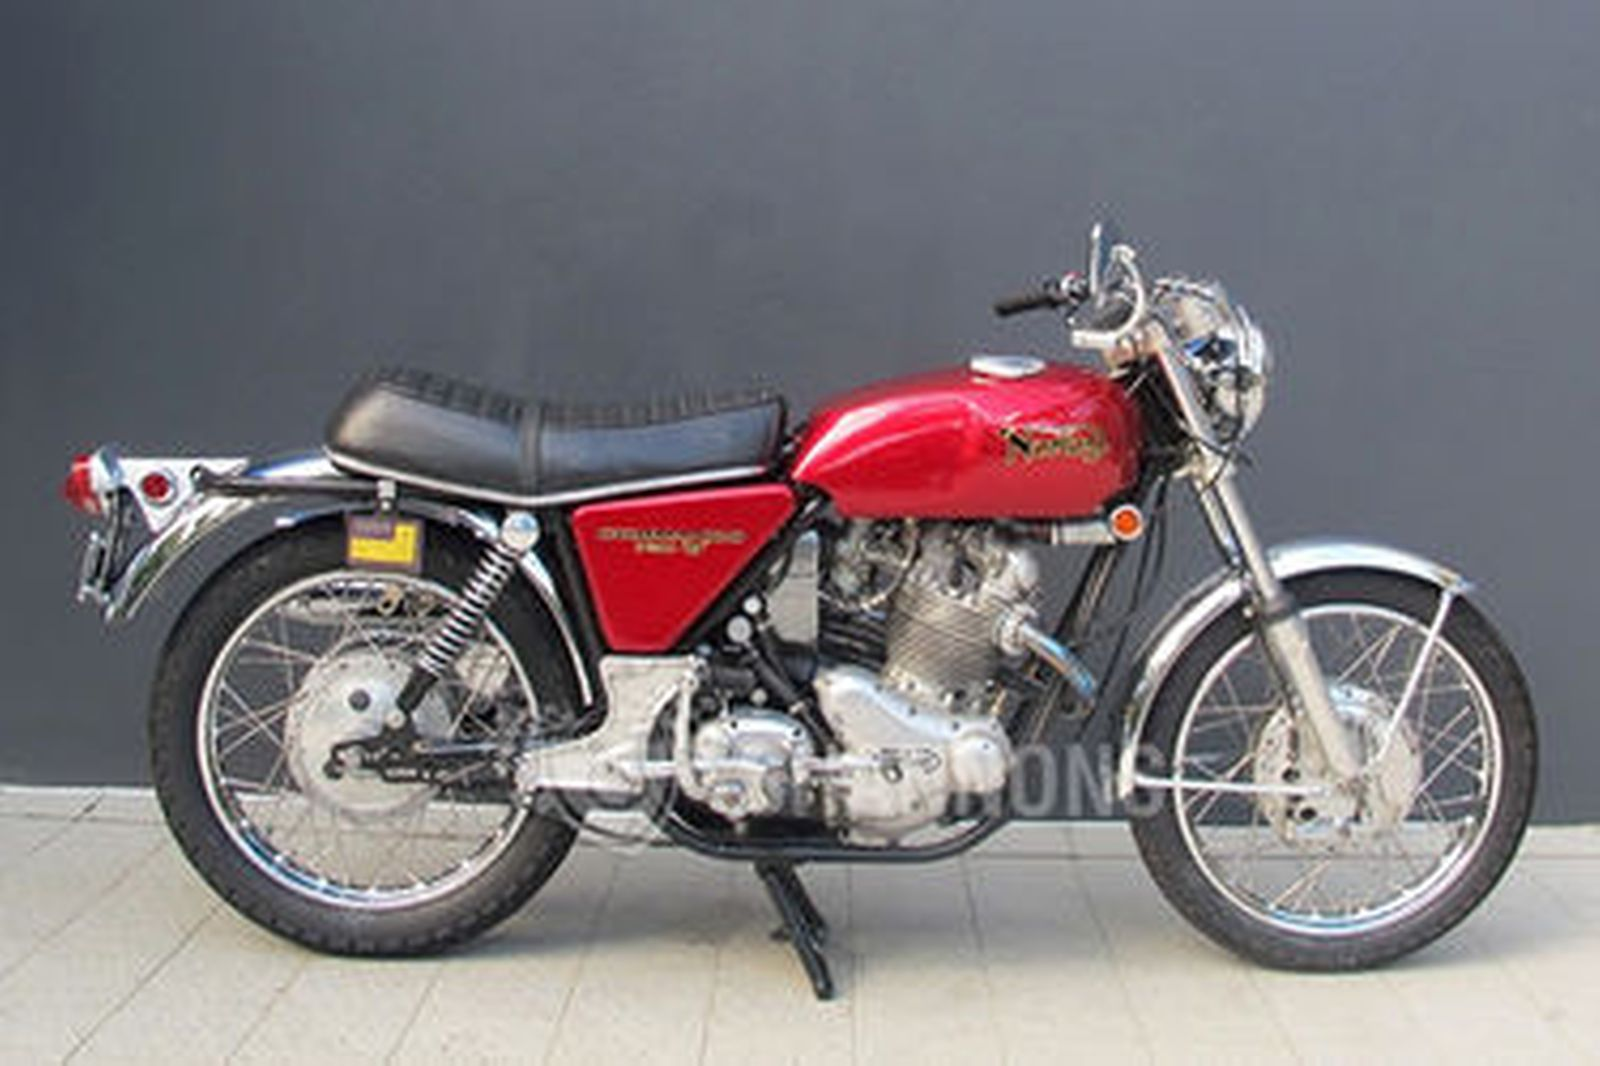 Norton 750 s commando motorcycle auctions lot n shannons for The norton